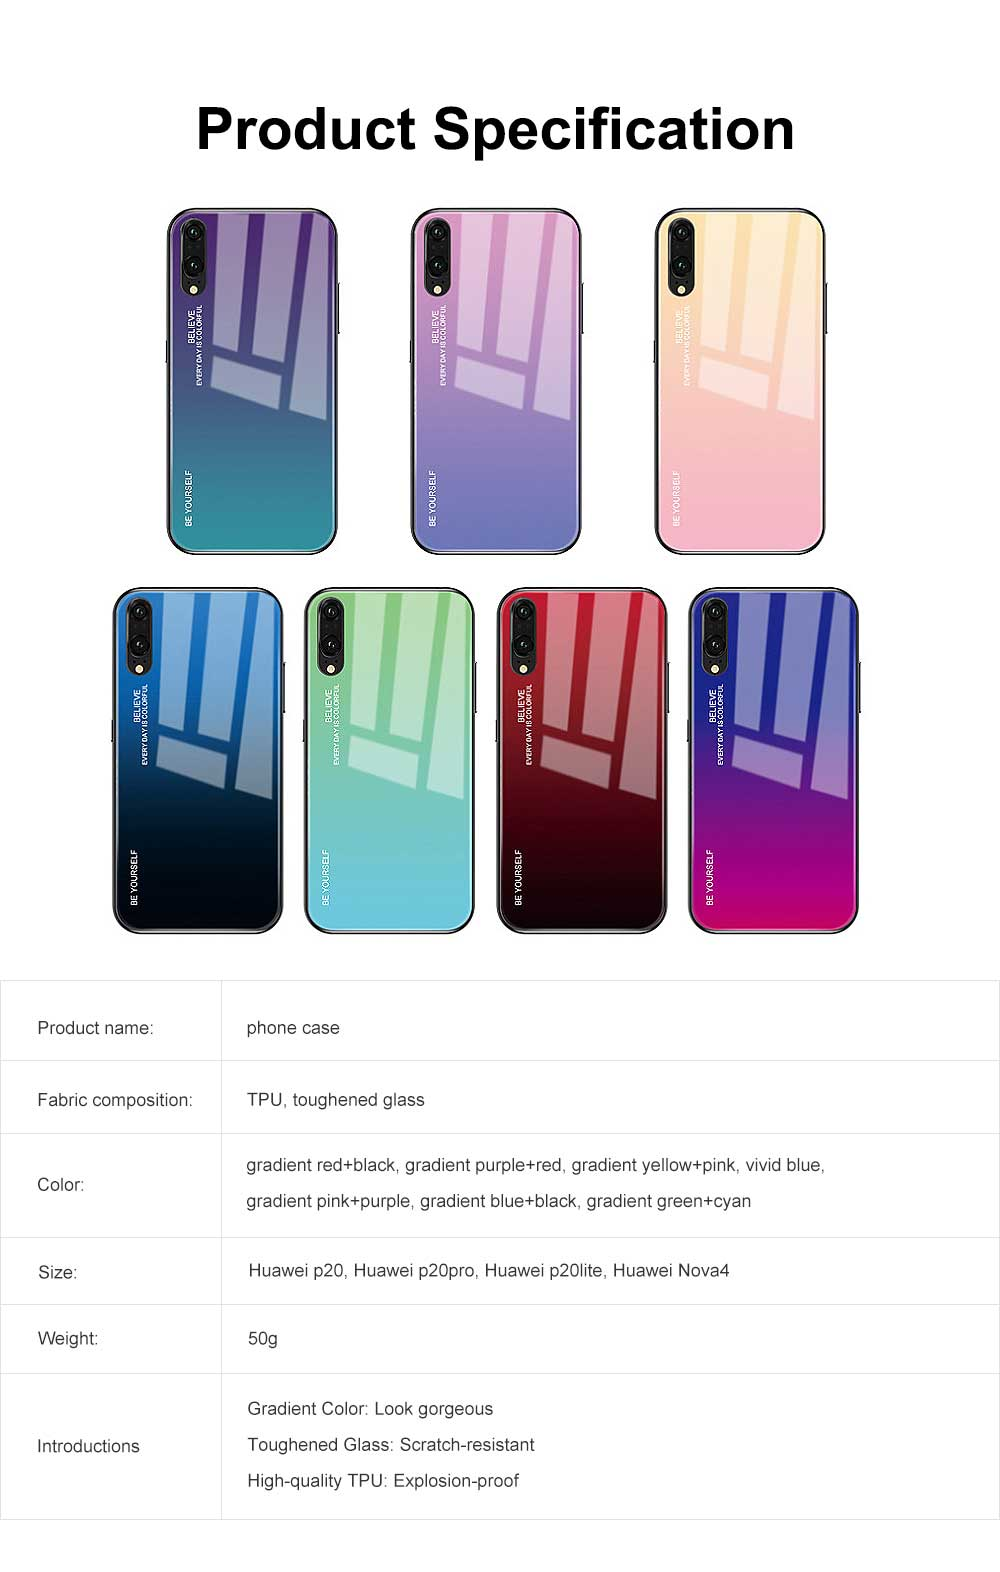 Gradient Phone Case for Huawei Nova 4, P20 Pro, P20 Lite, Explosion-proof and Scratch-resistant Case Cover with Toughened Glass and High-quality TPU 6